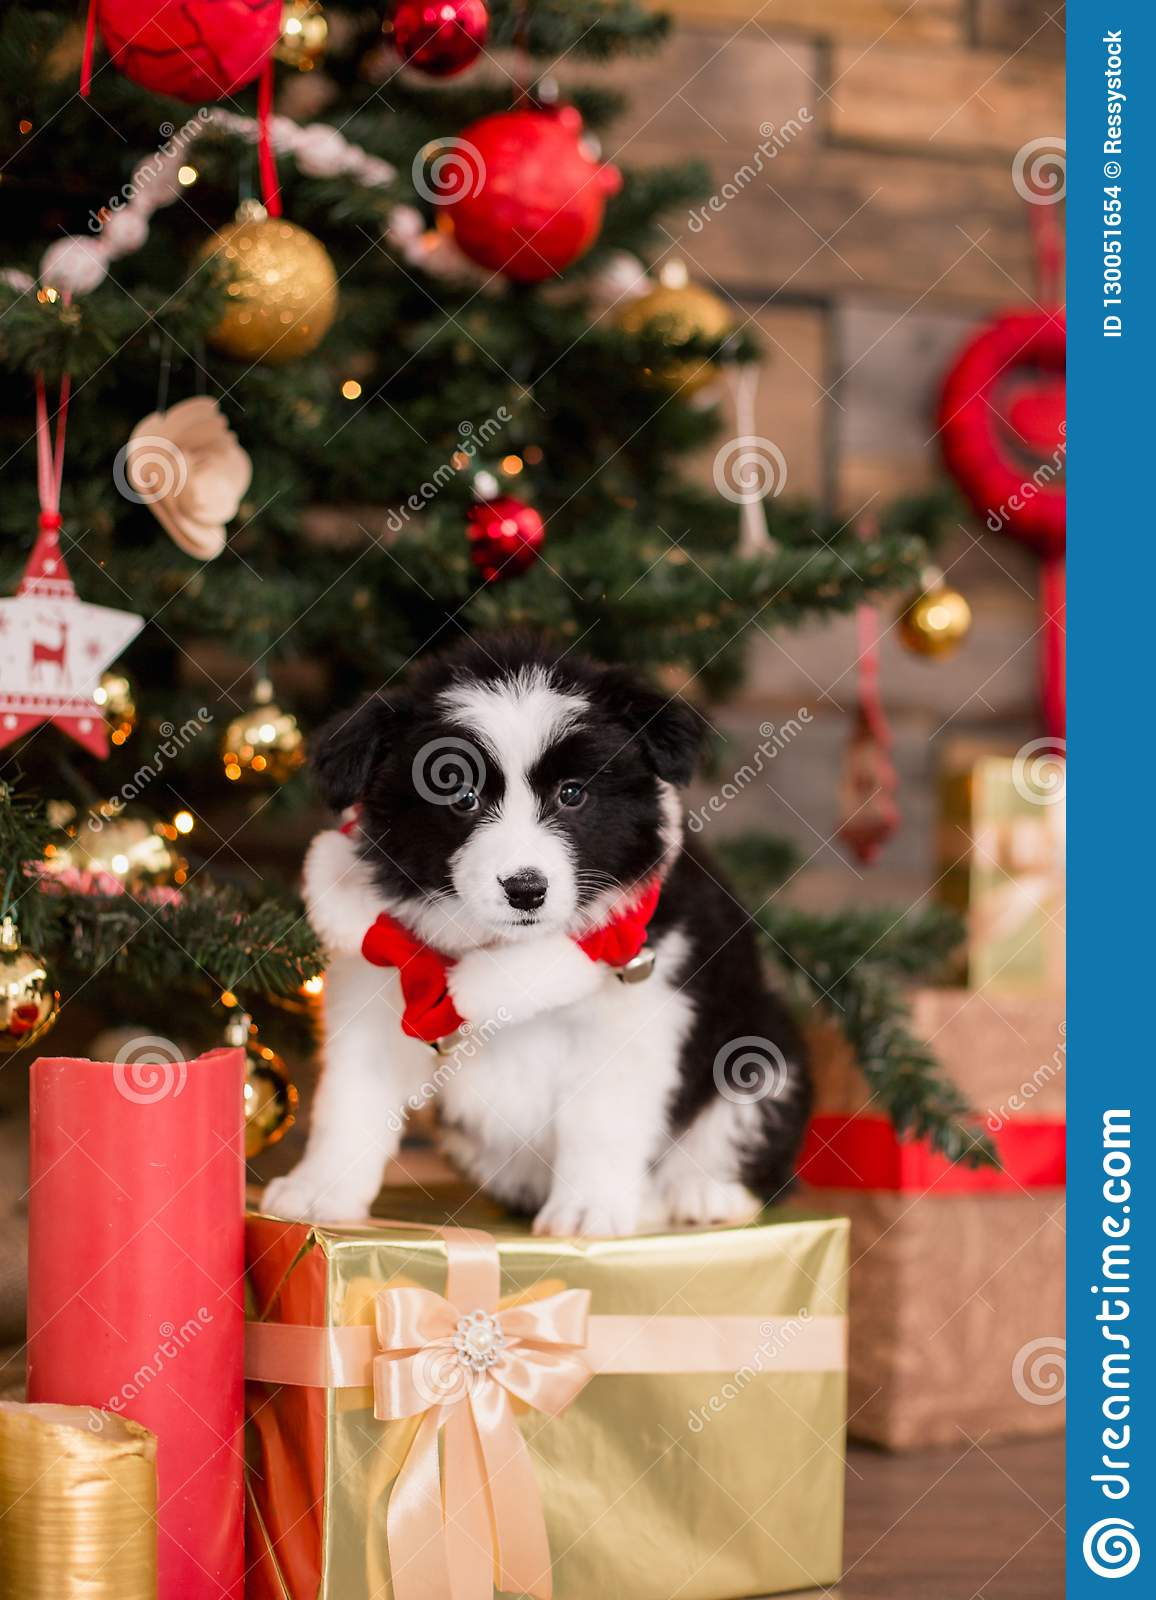 Border Collie puppy on white background of Christmas decorations